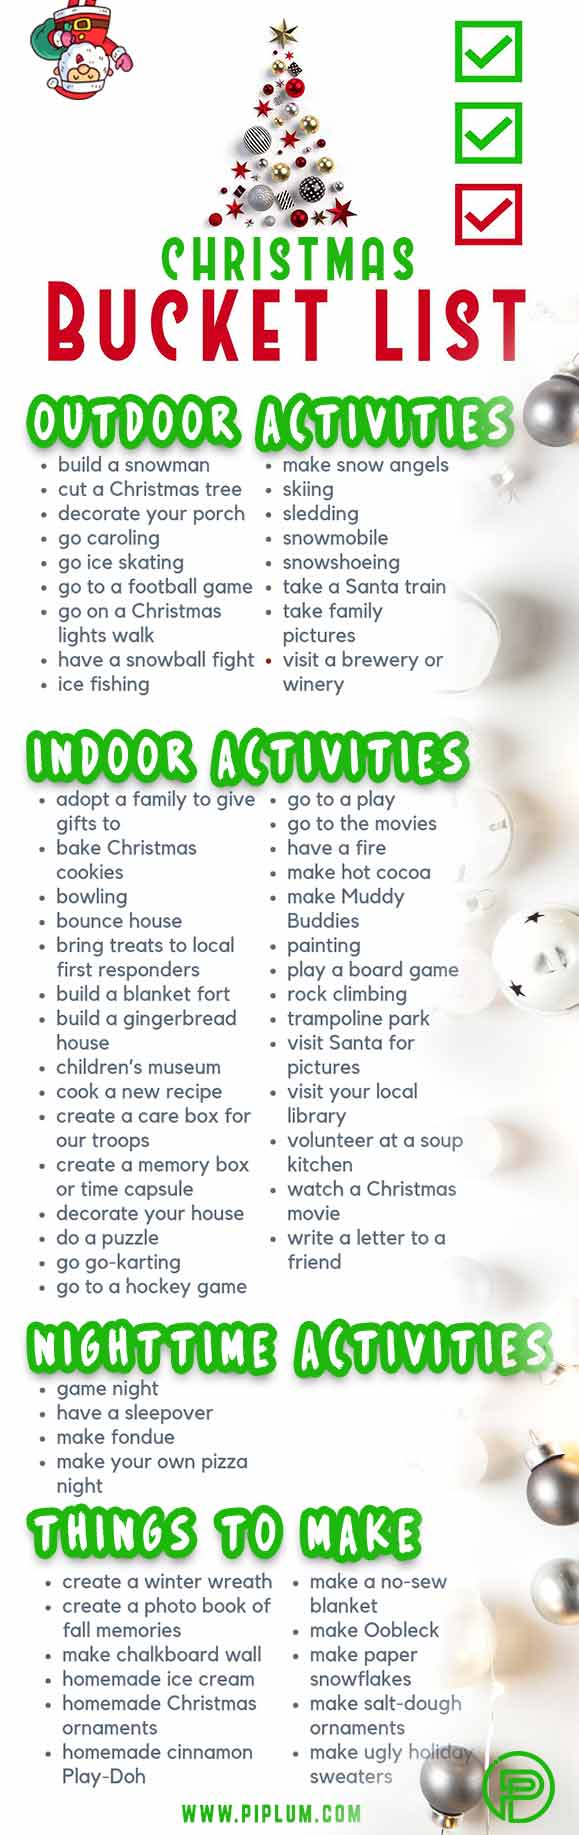 Christmas-activities-and-ideas-bucket-2021-2022-2023-2024-new-year